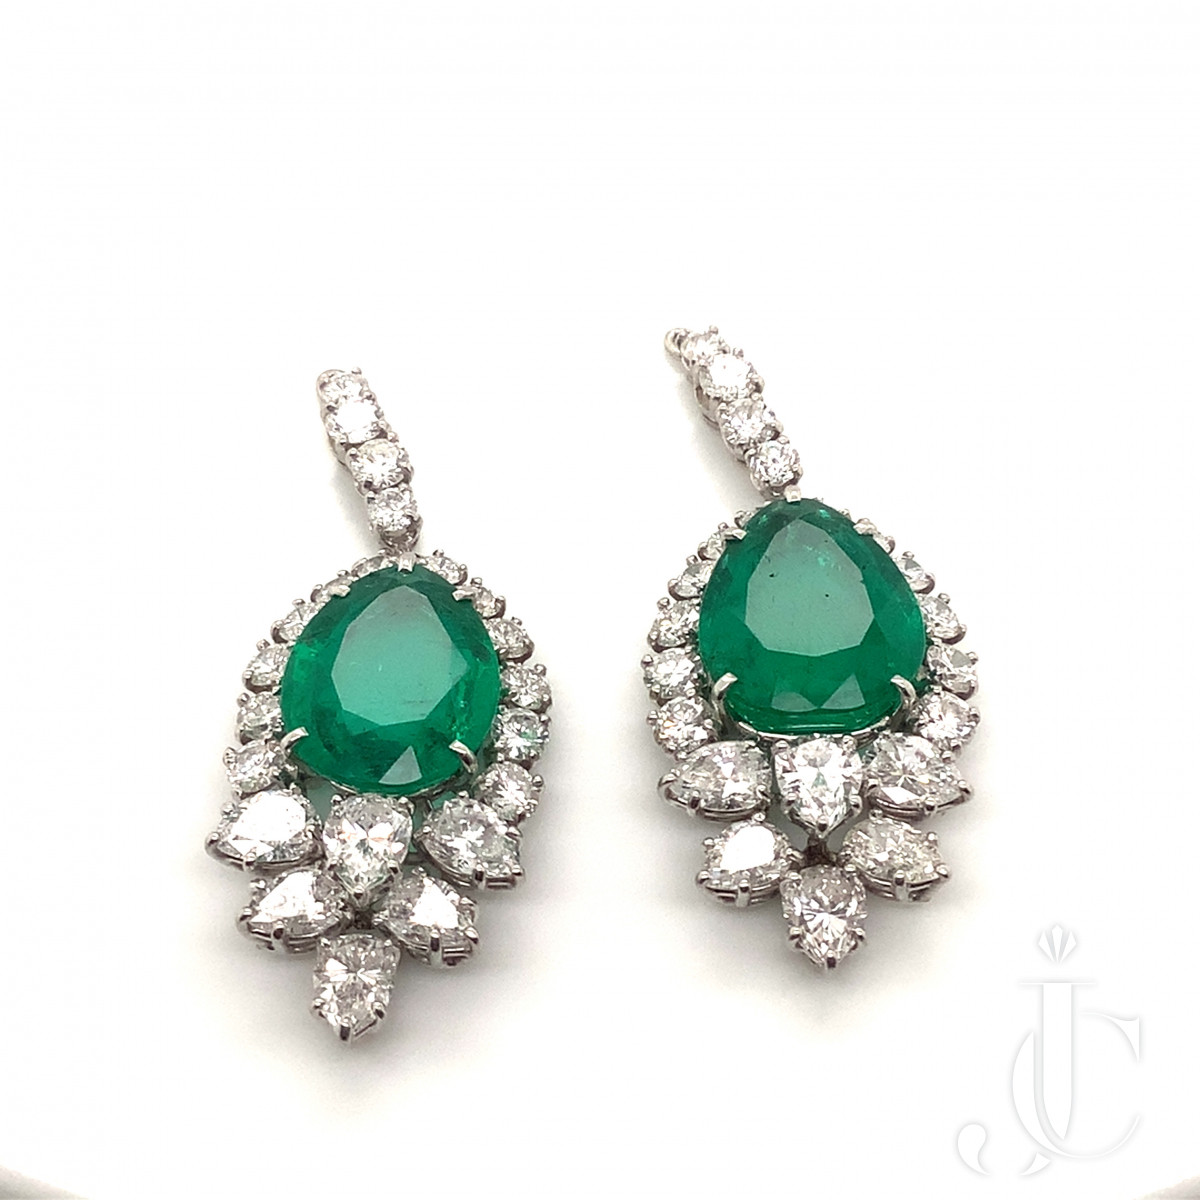 A Pair of Columbian Emerald and Diamond Earrings